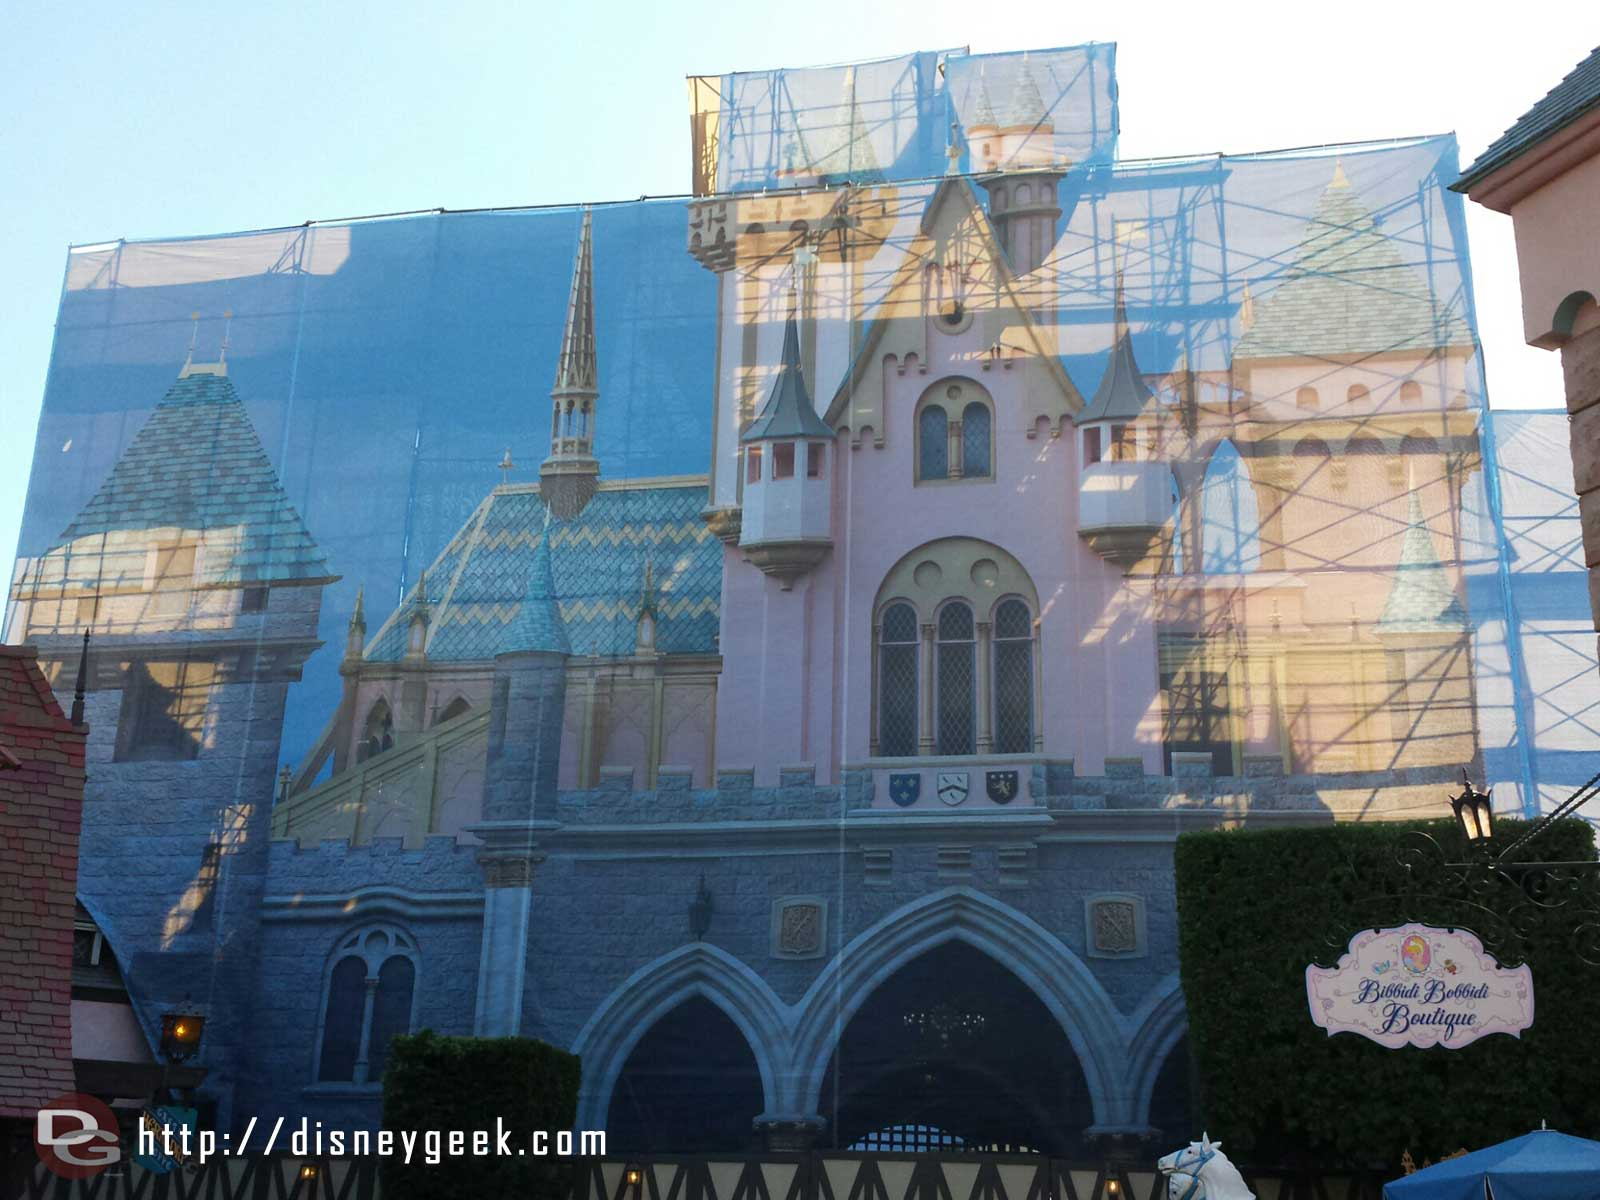 The Fantasyland side of the scaffolding features a picture of the castle